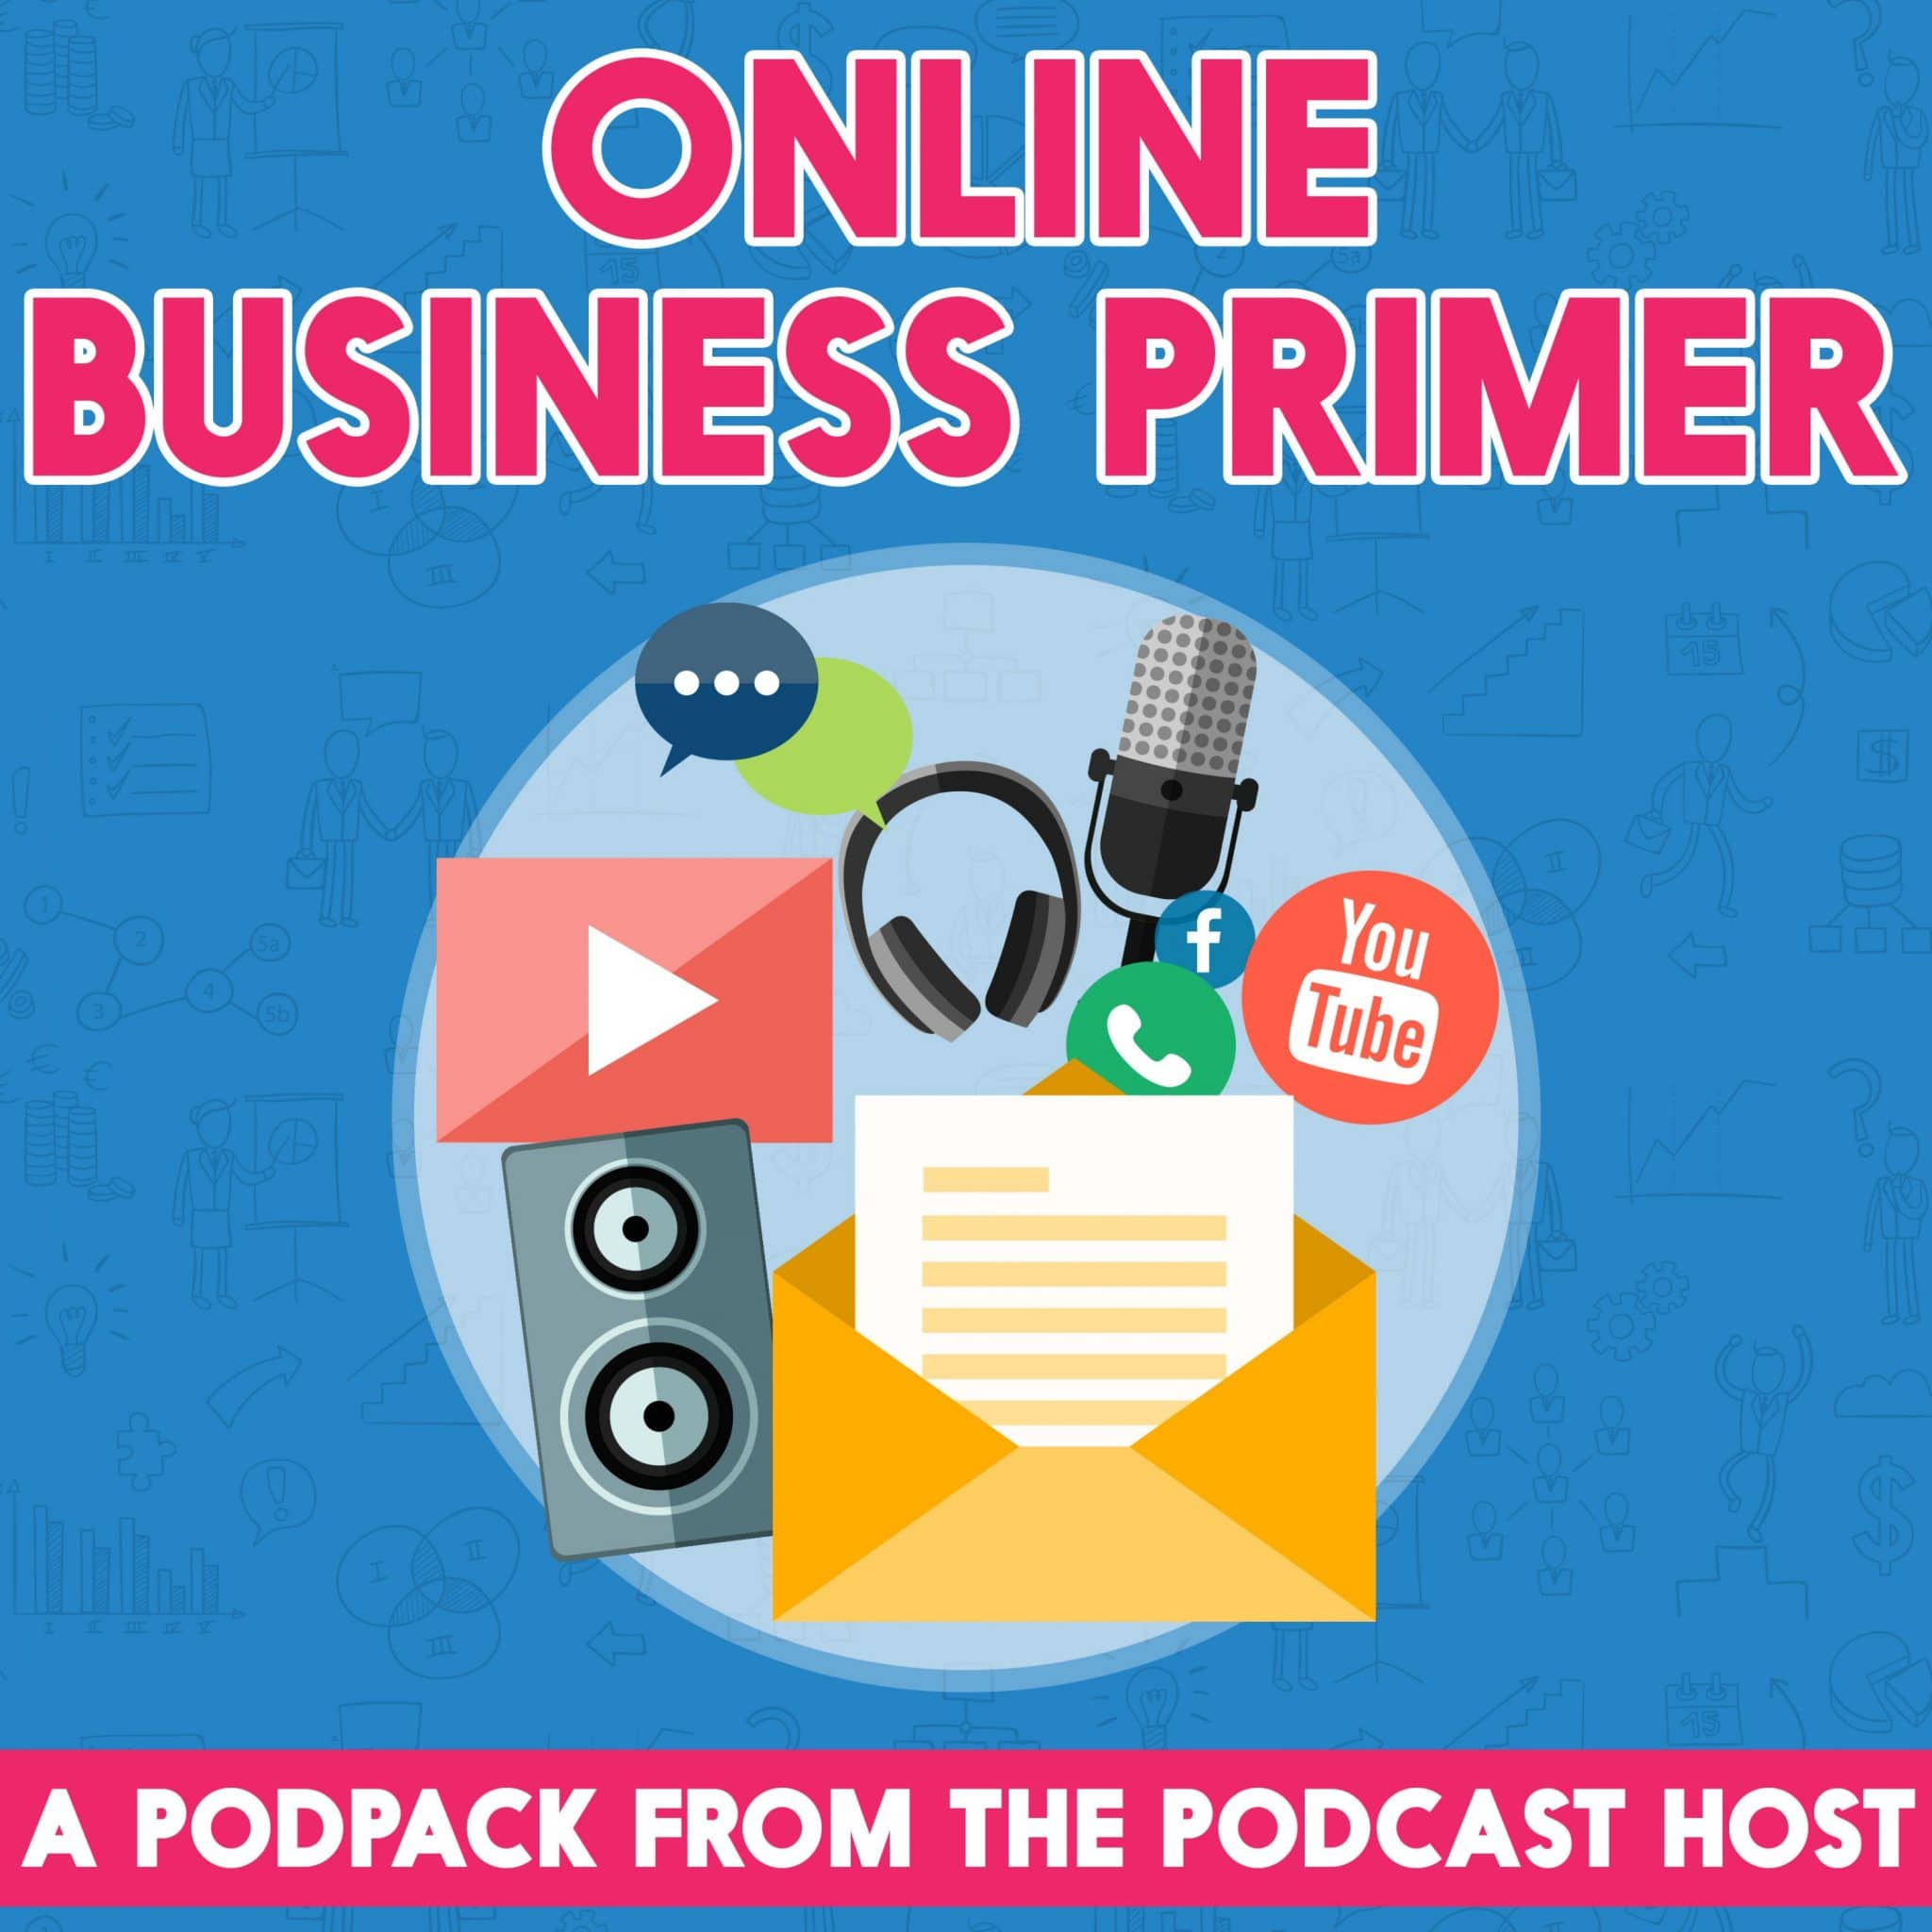 The Online Business Primer: A Podpack from The Podcast Host